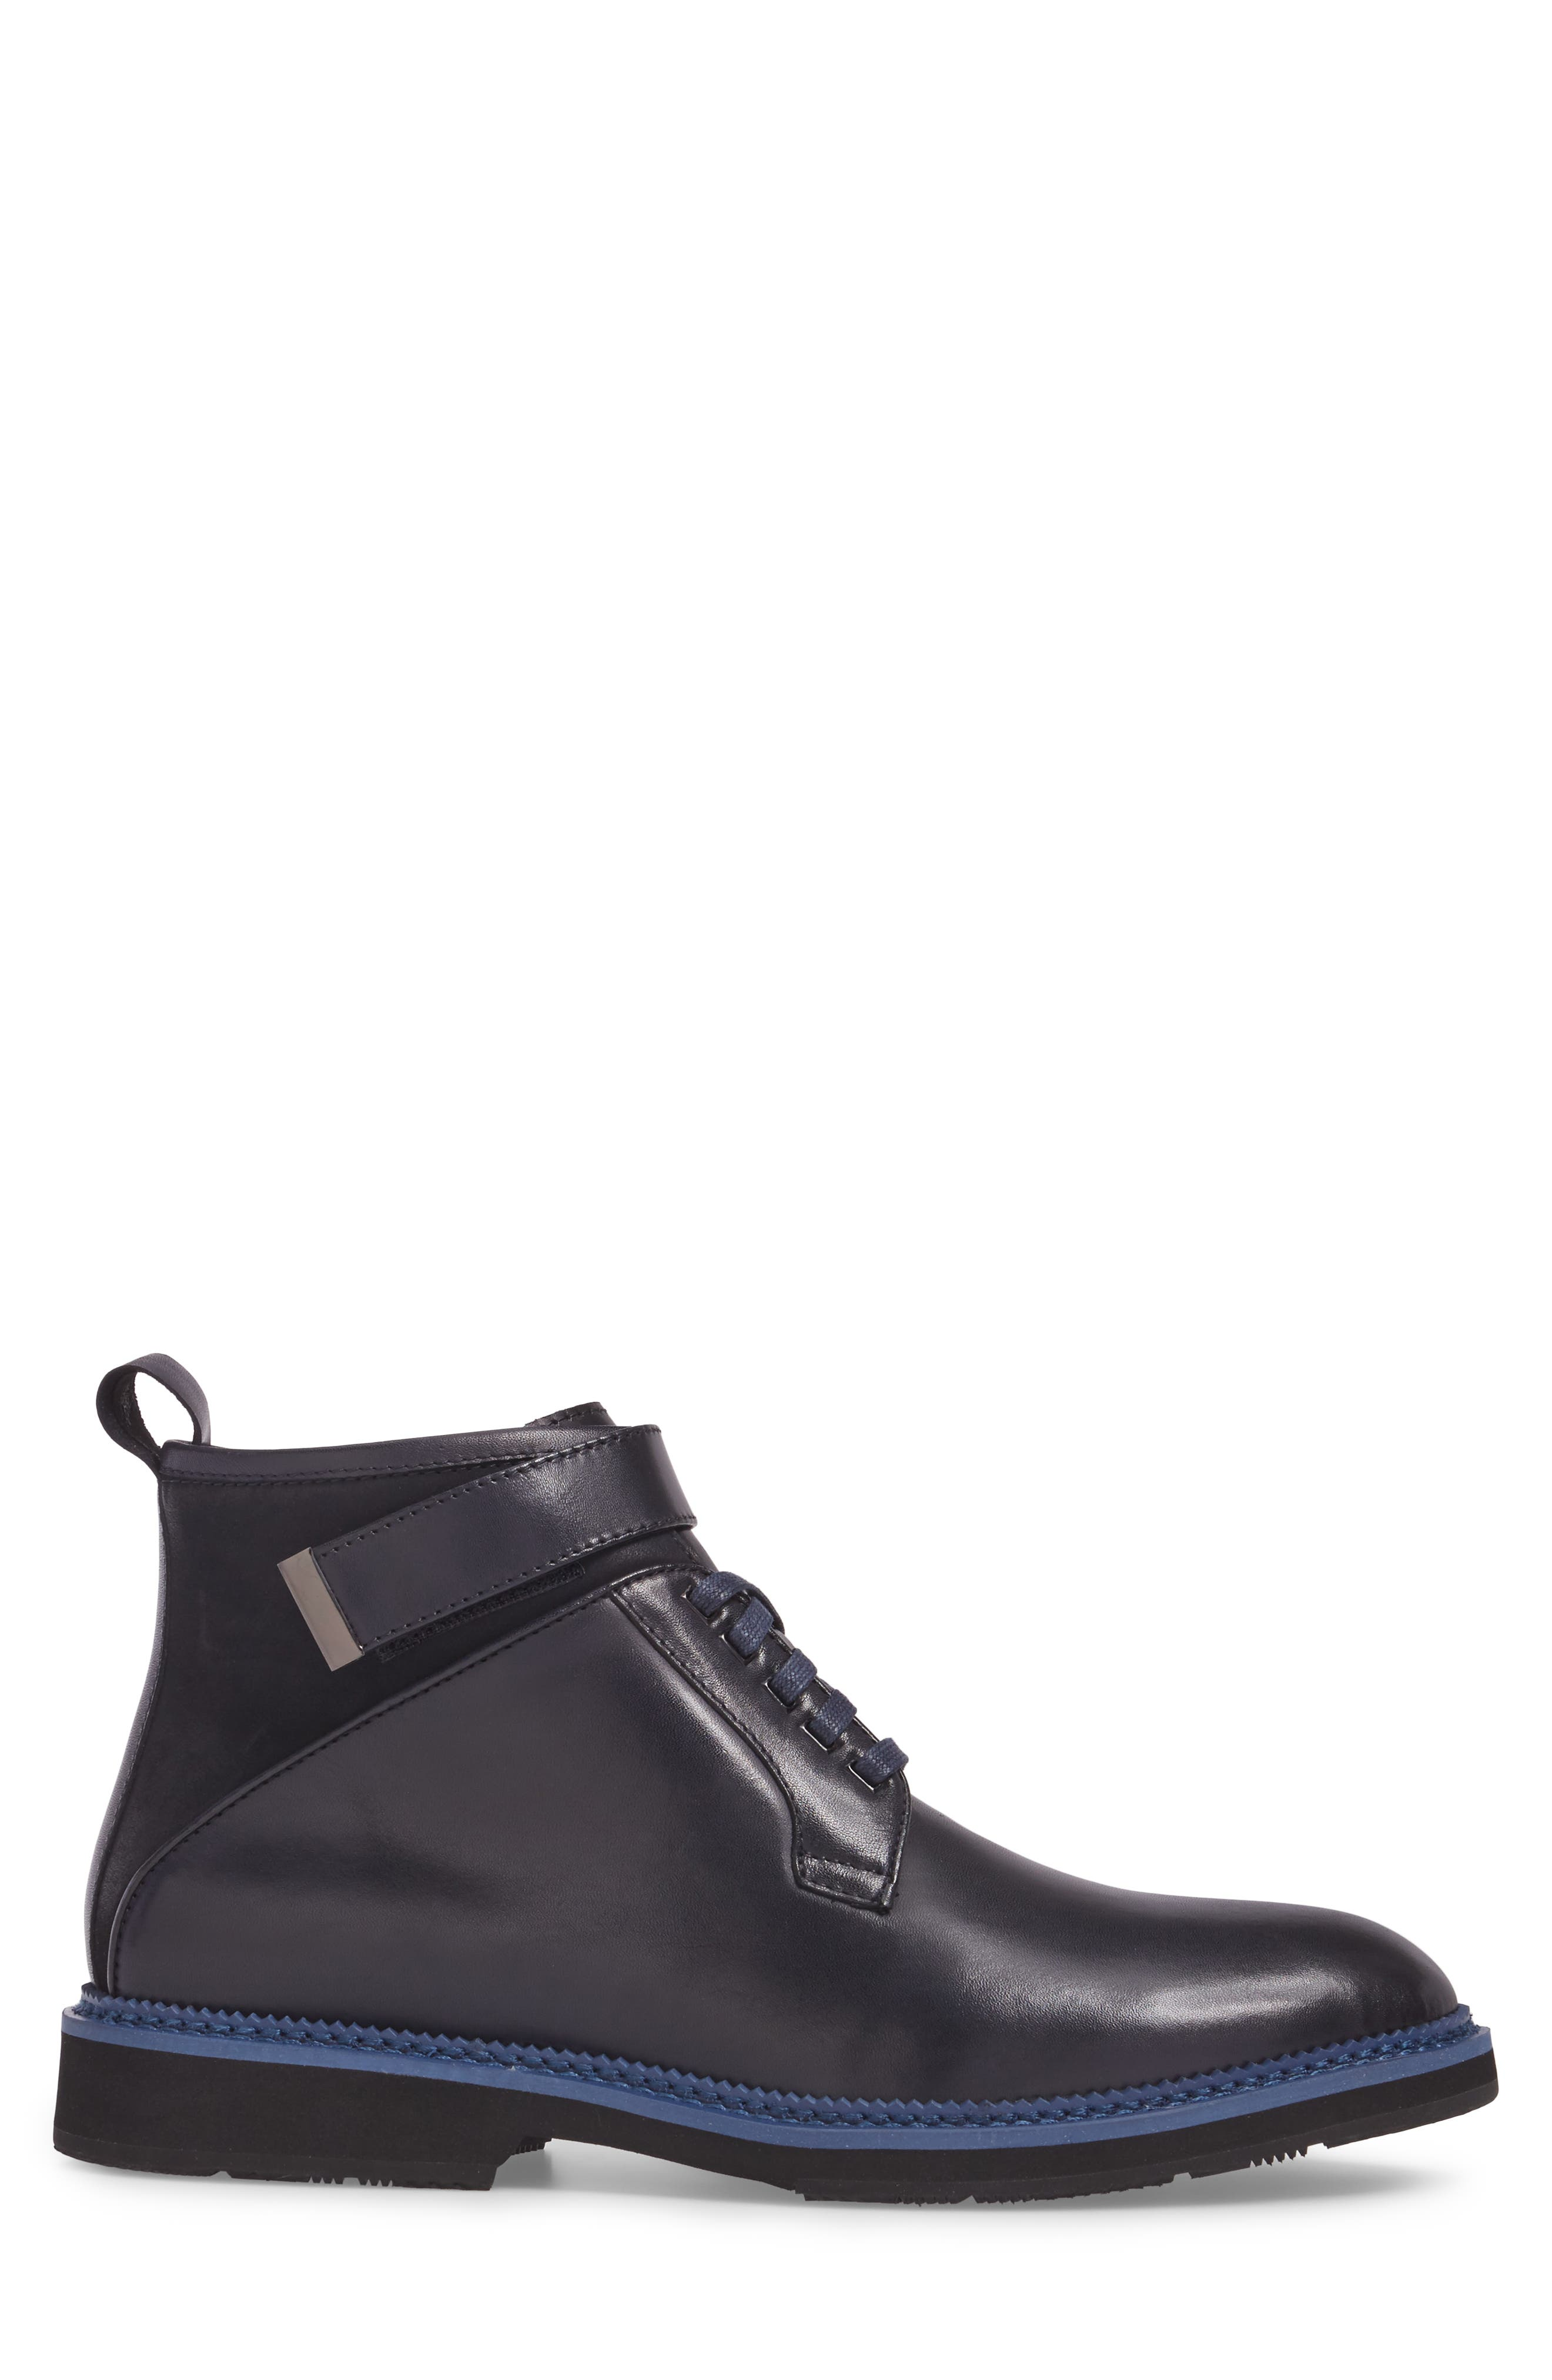 Ginko Plain Toe Boot,                             Alternate thumbnail 3, color,                             Navy Leather